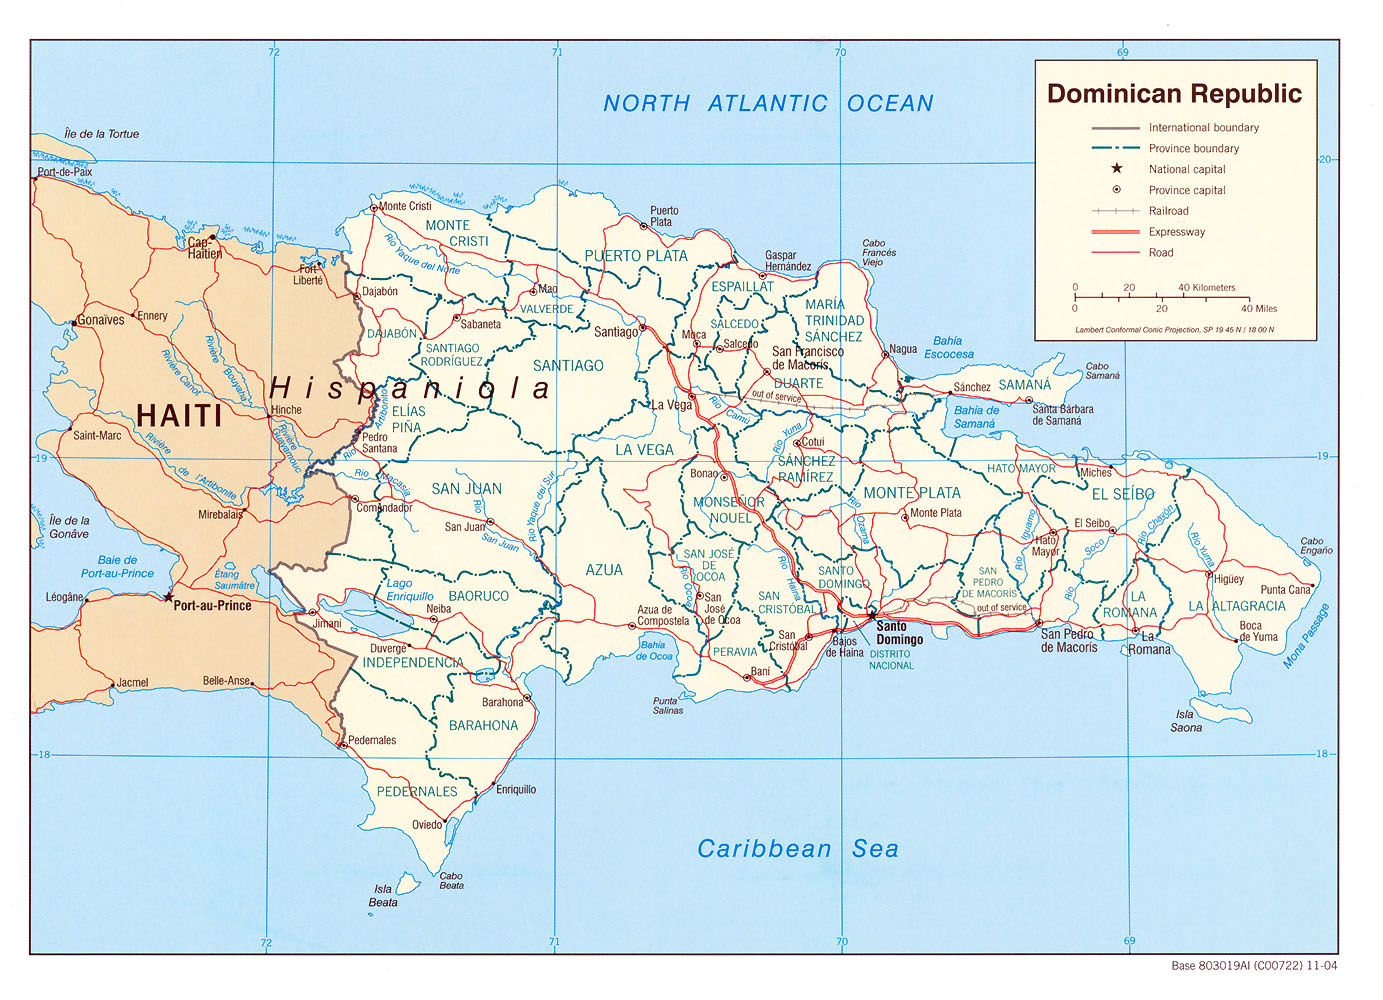 Picture of: Dominican Republic Maps Perry Castaneda Map Collection Ut Library Online